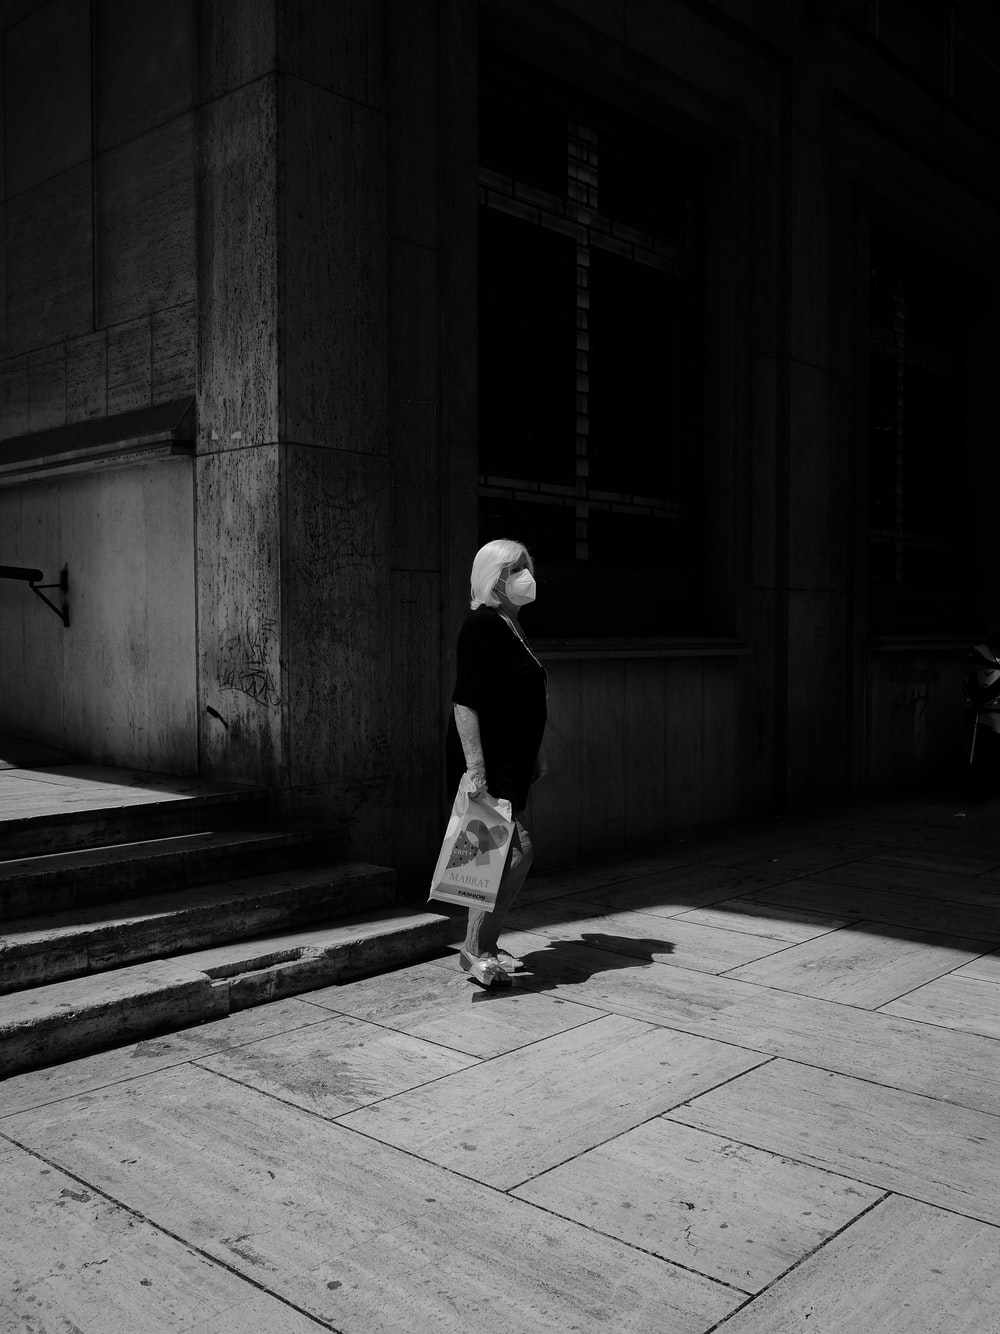 grayscale photo of man in black shirt and pants walking on sidewalk